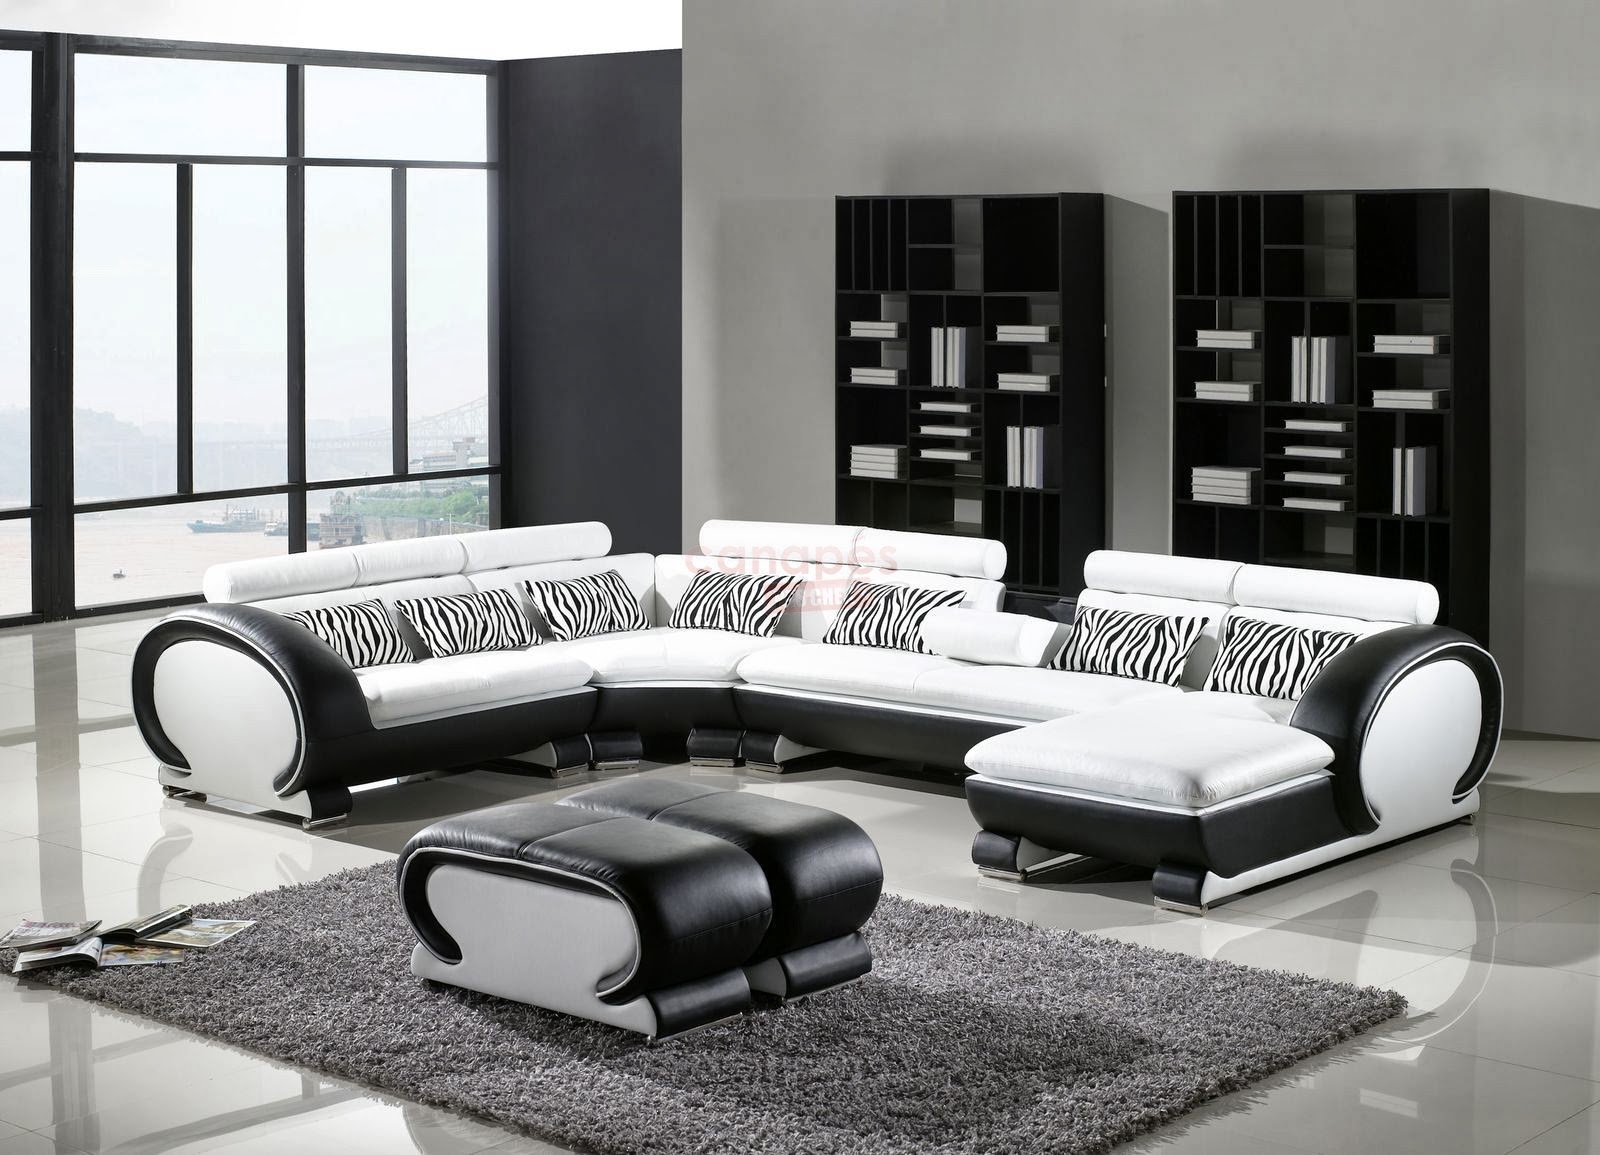 disposition de meubles dans une piece. Black Bedroom Furniture Sets. Home Design Ideas